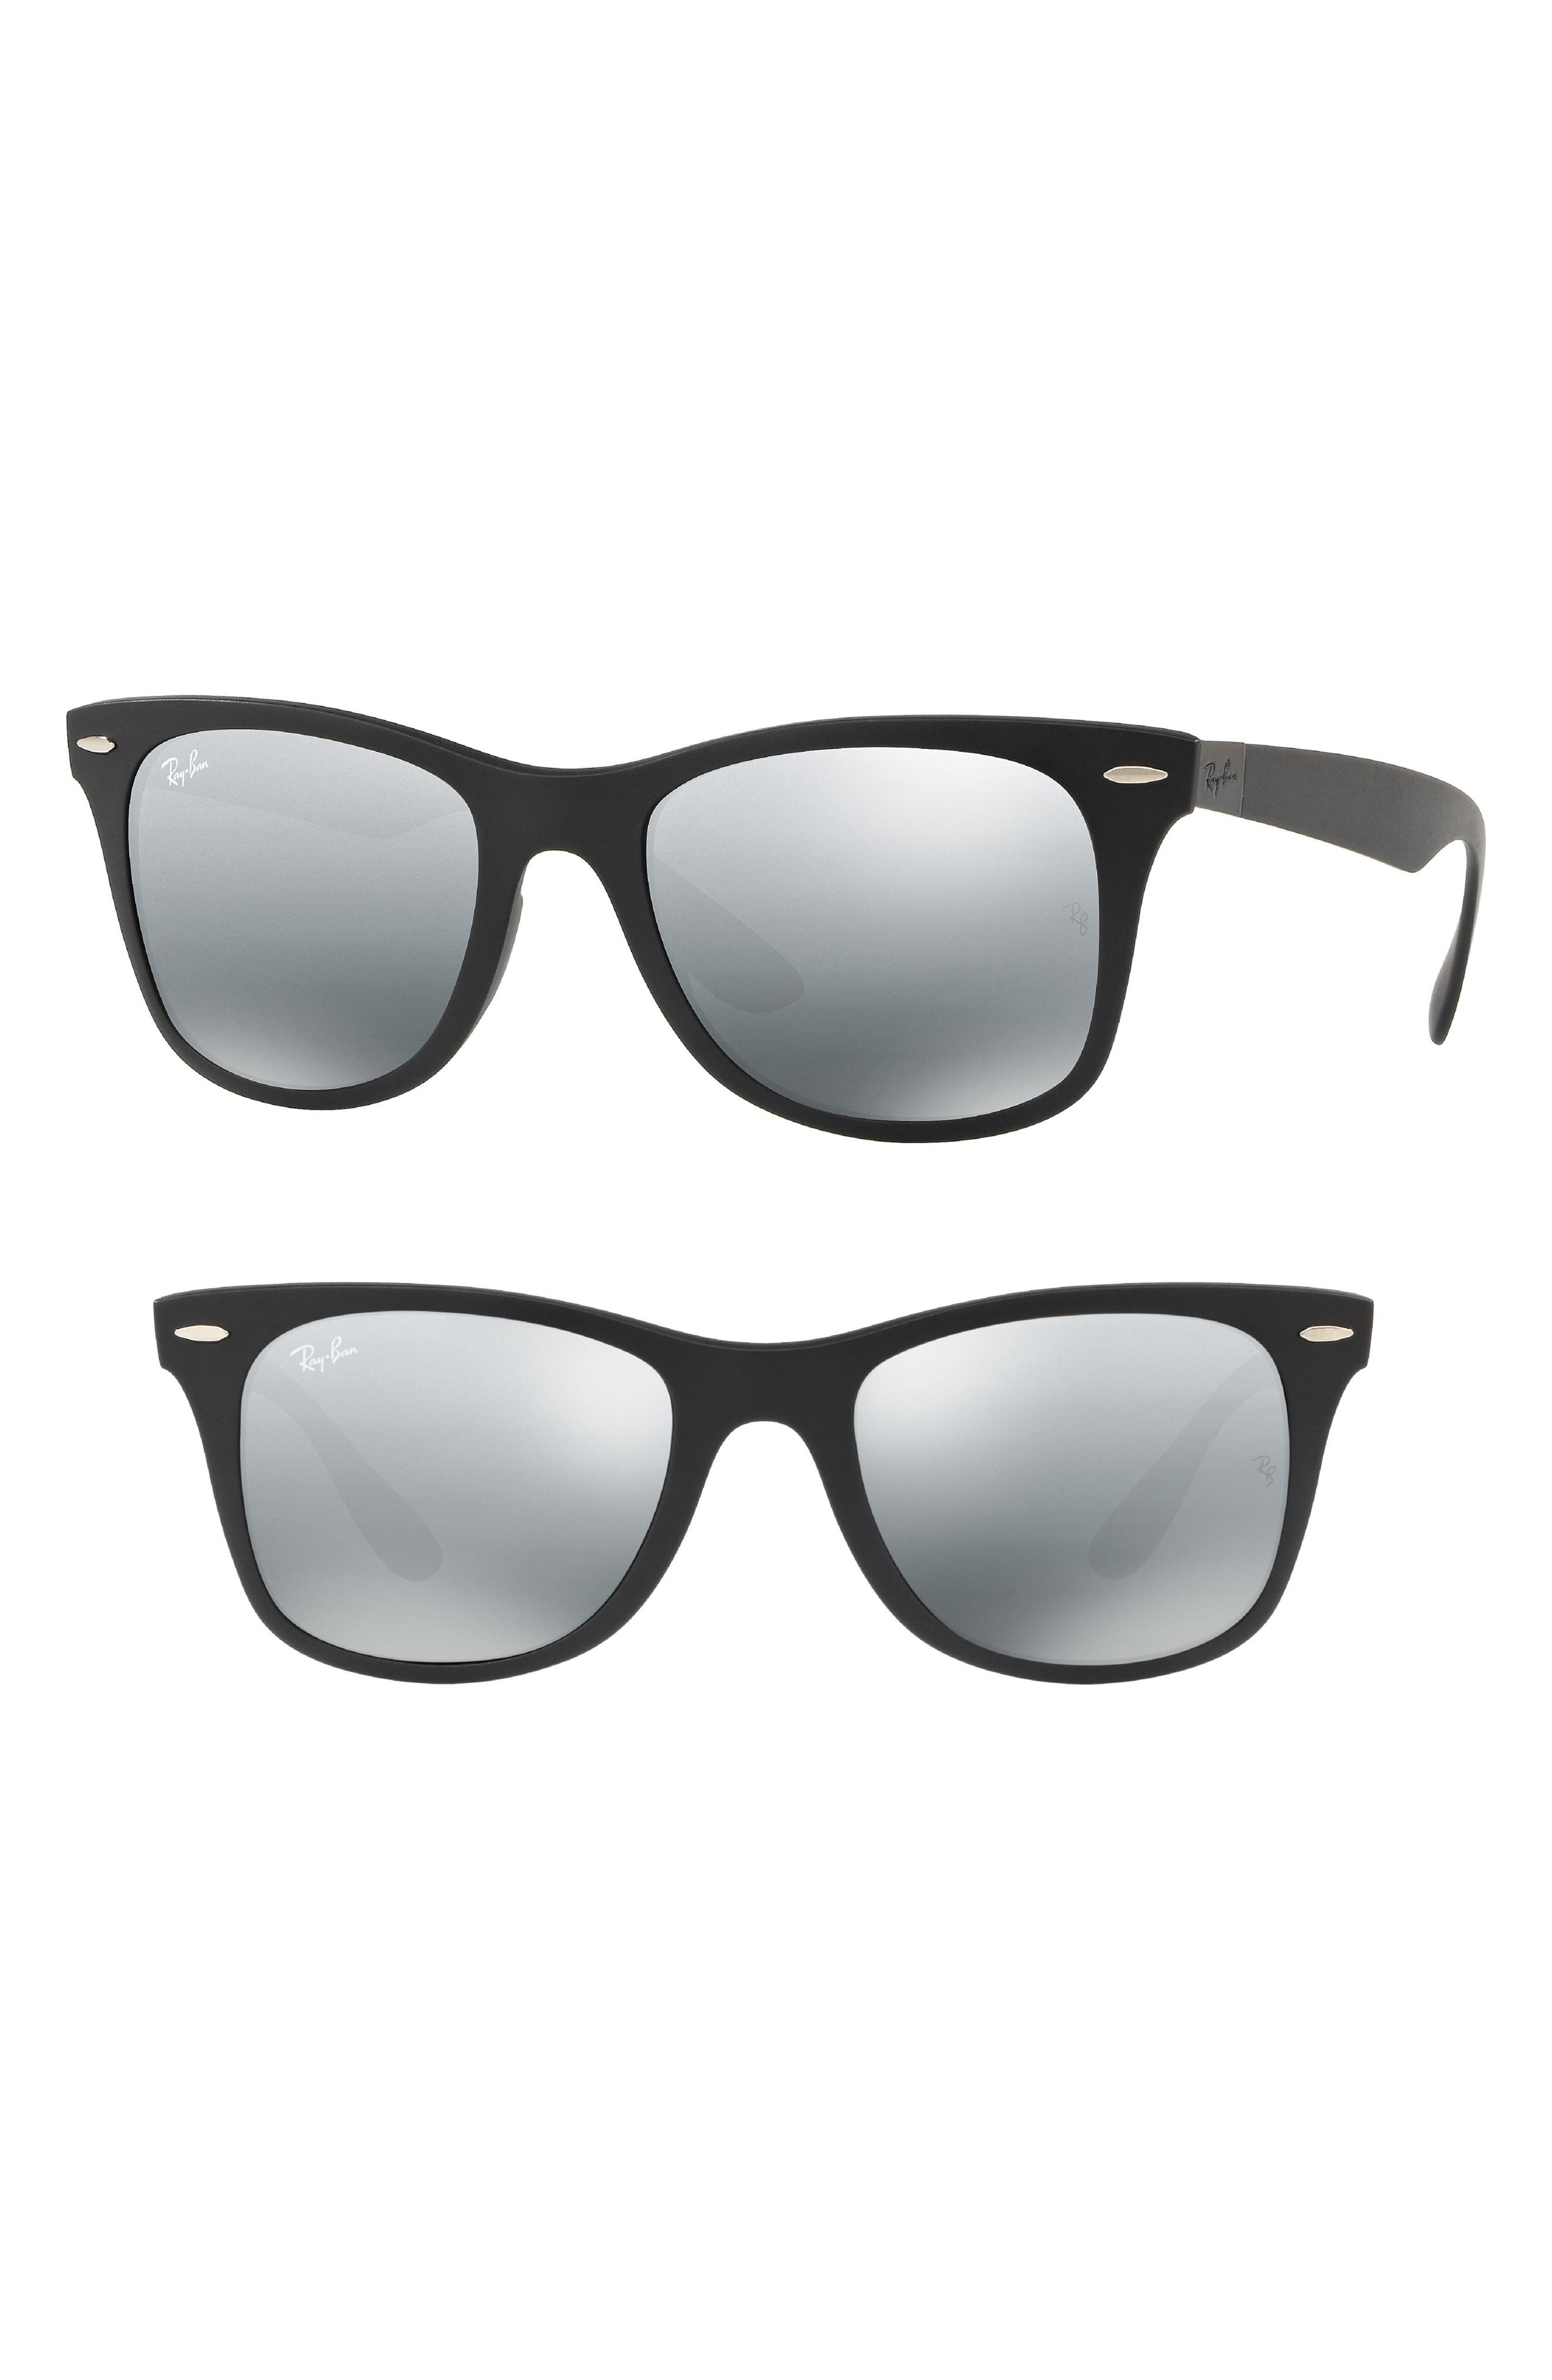 Tech Wayfarer Liteforce 52mm Sunglasses,                             Main thumbnail 1, color,                             Matte Black